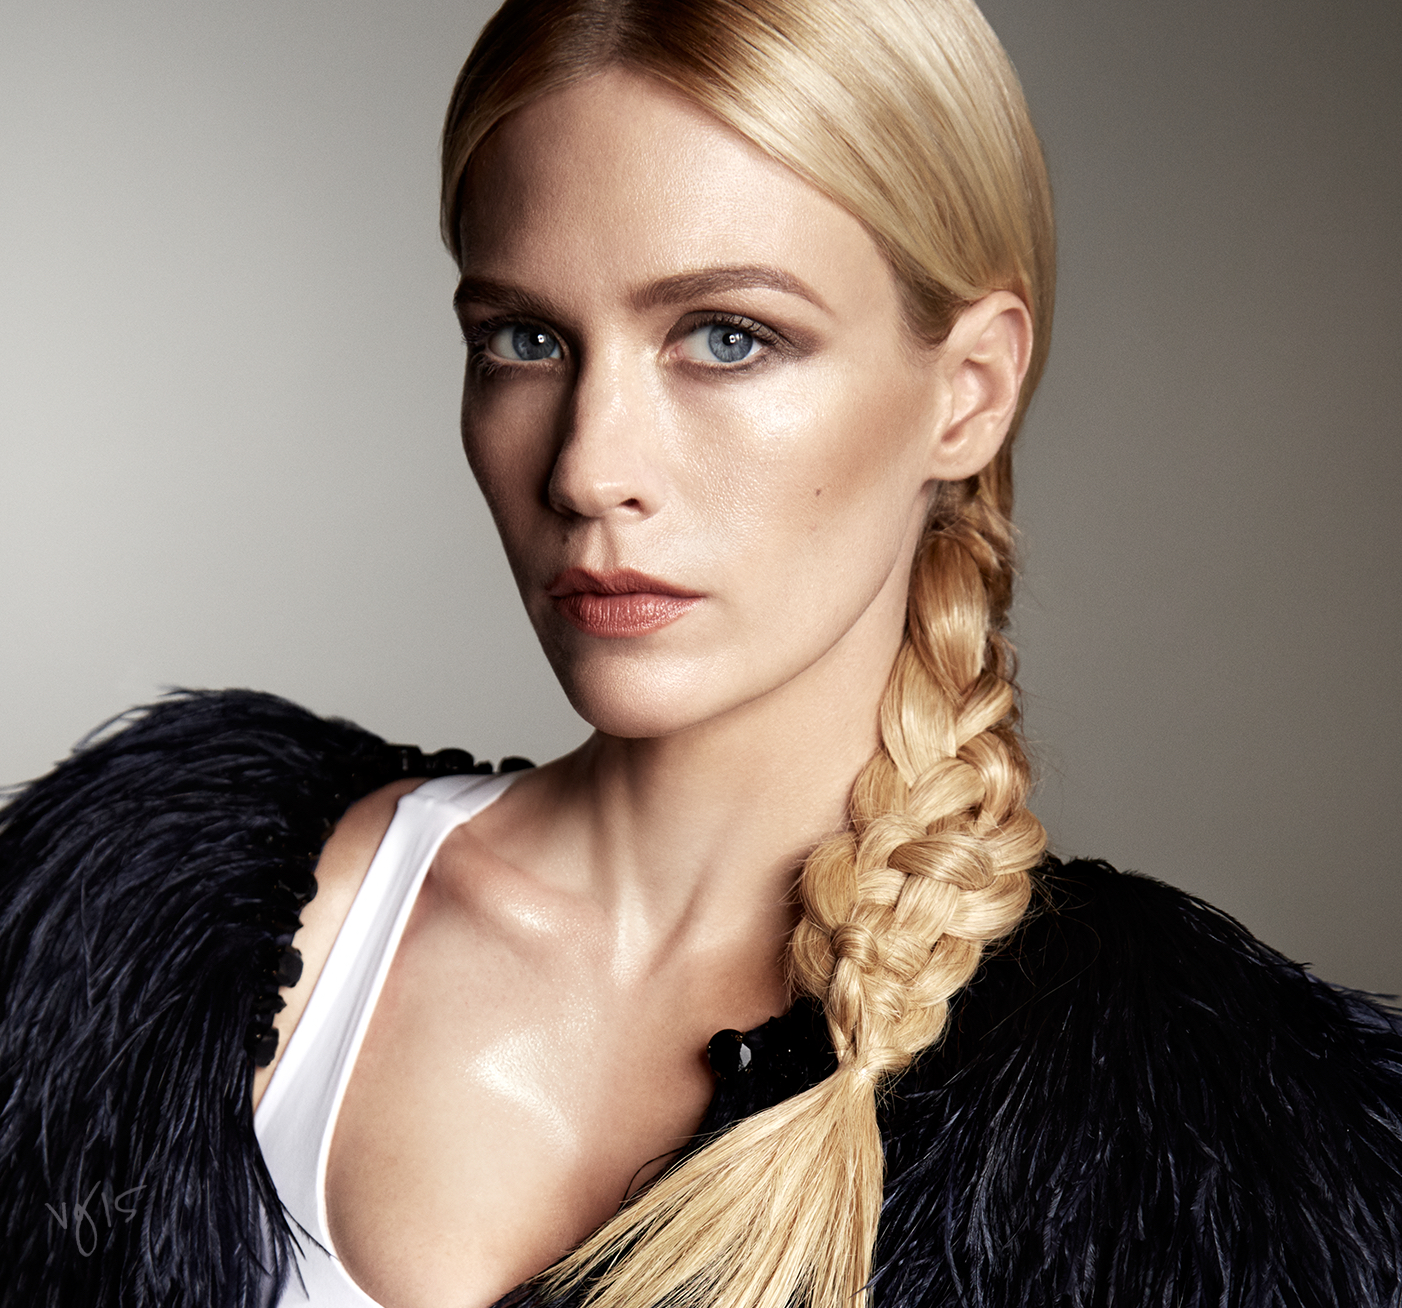 The Wedge Eye Tutorial featuring January Jones for the #VIOLETFILES